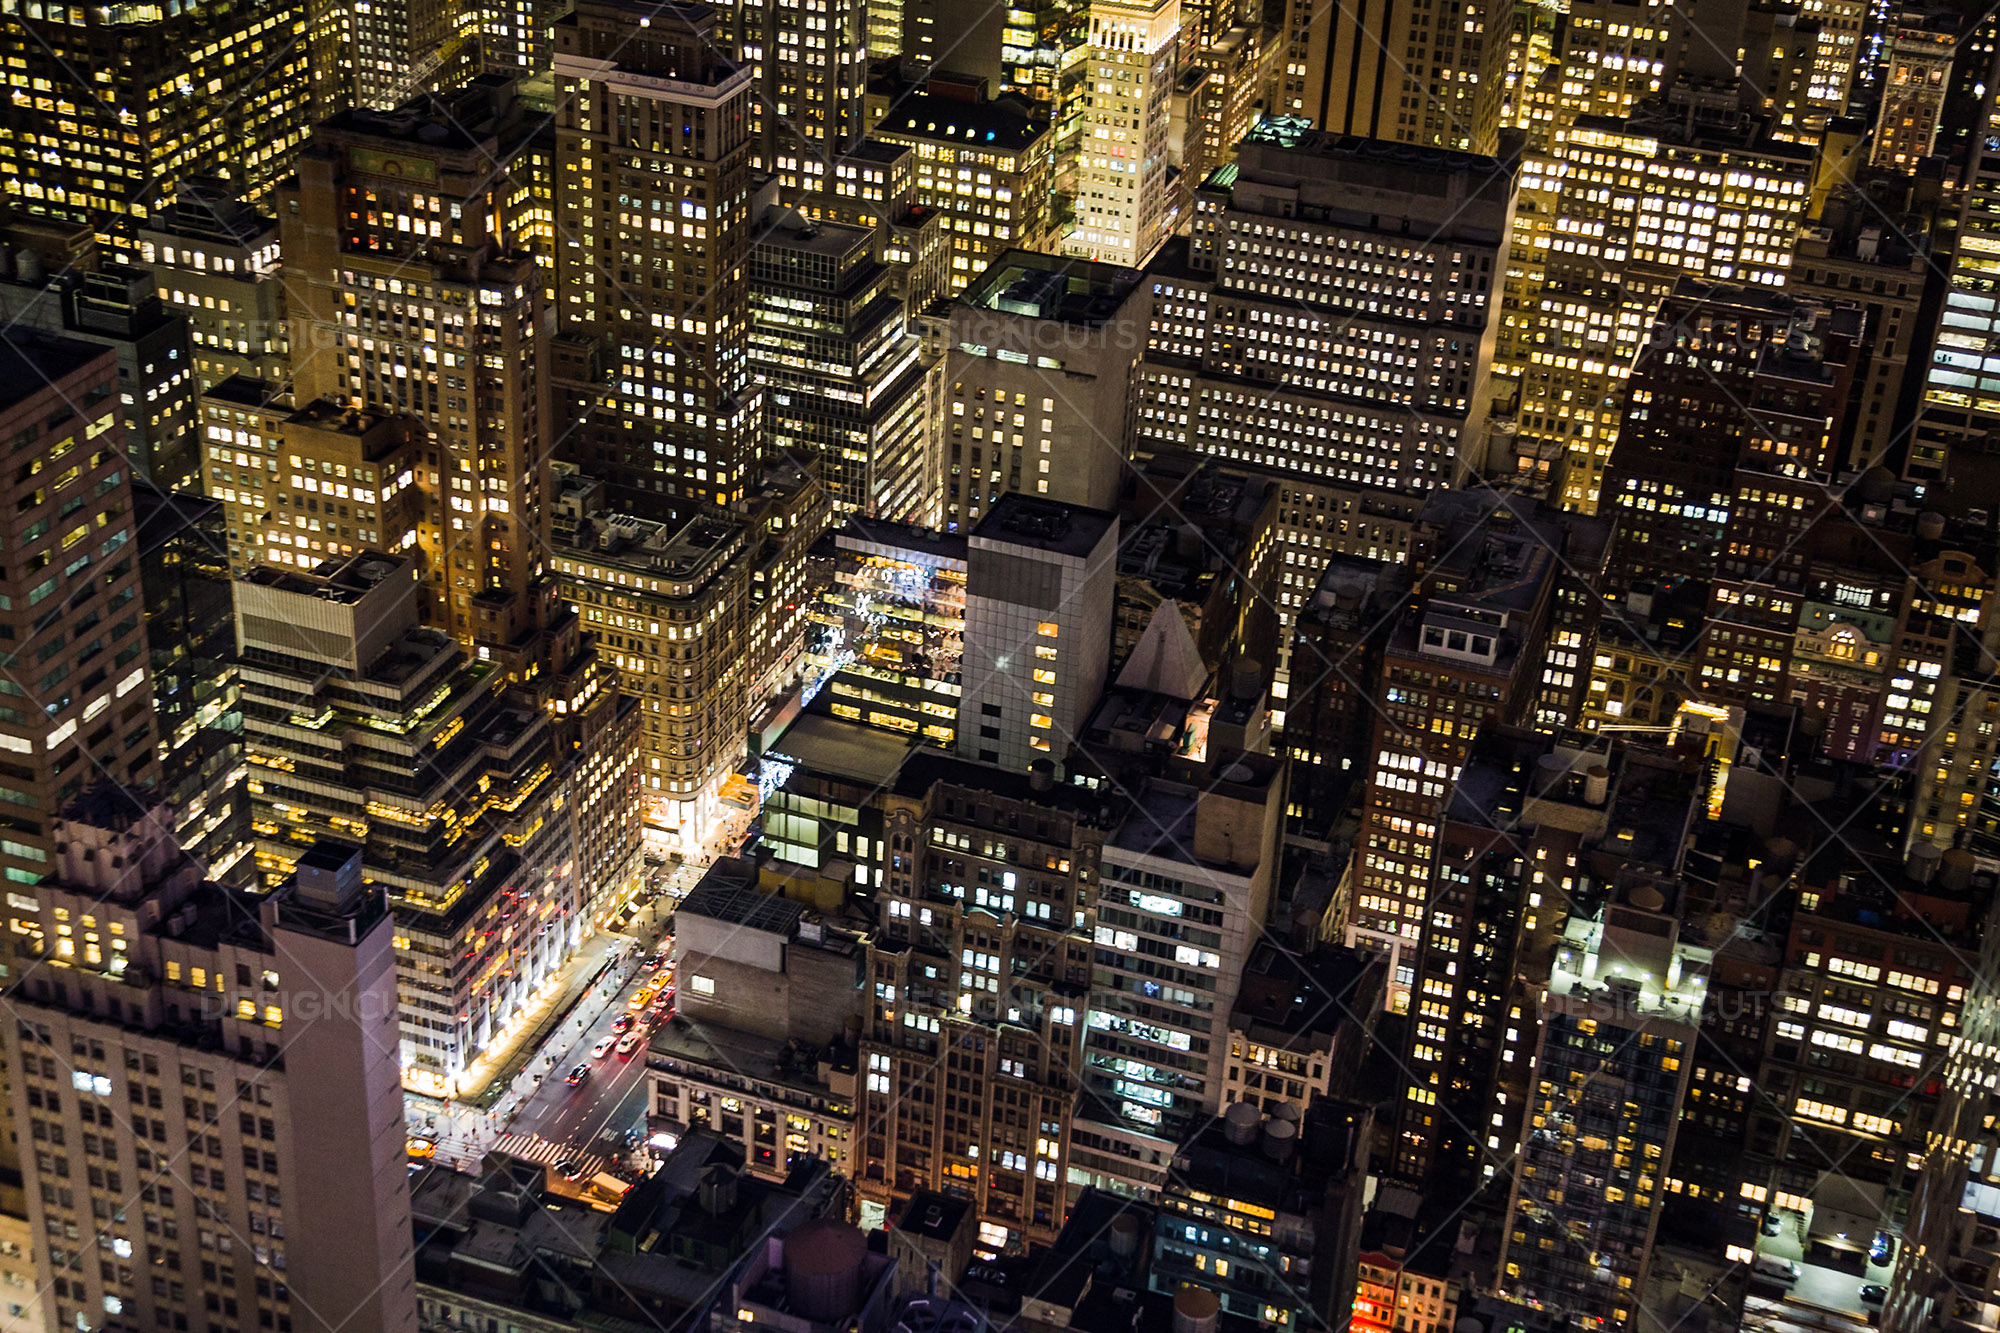 Aerial View Of New York City Skyscrapers Lit Up At Night 1